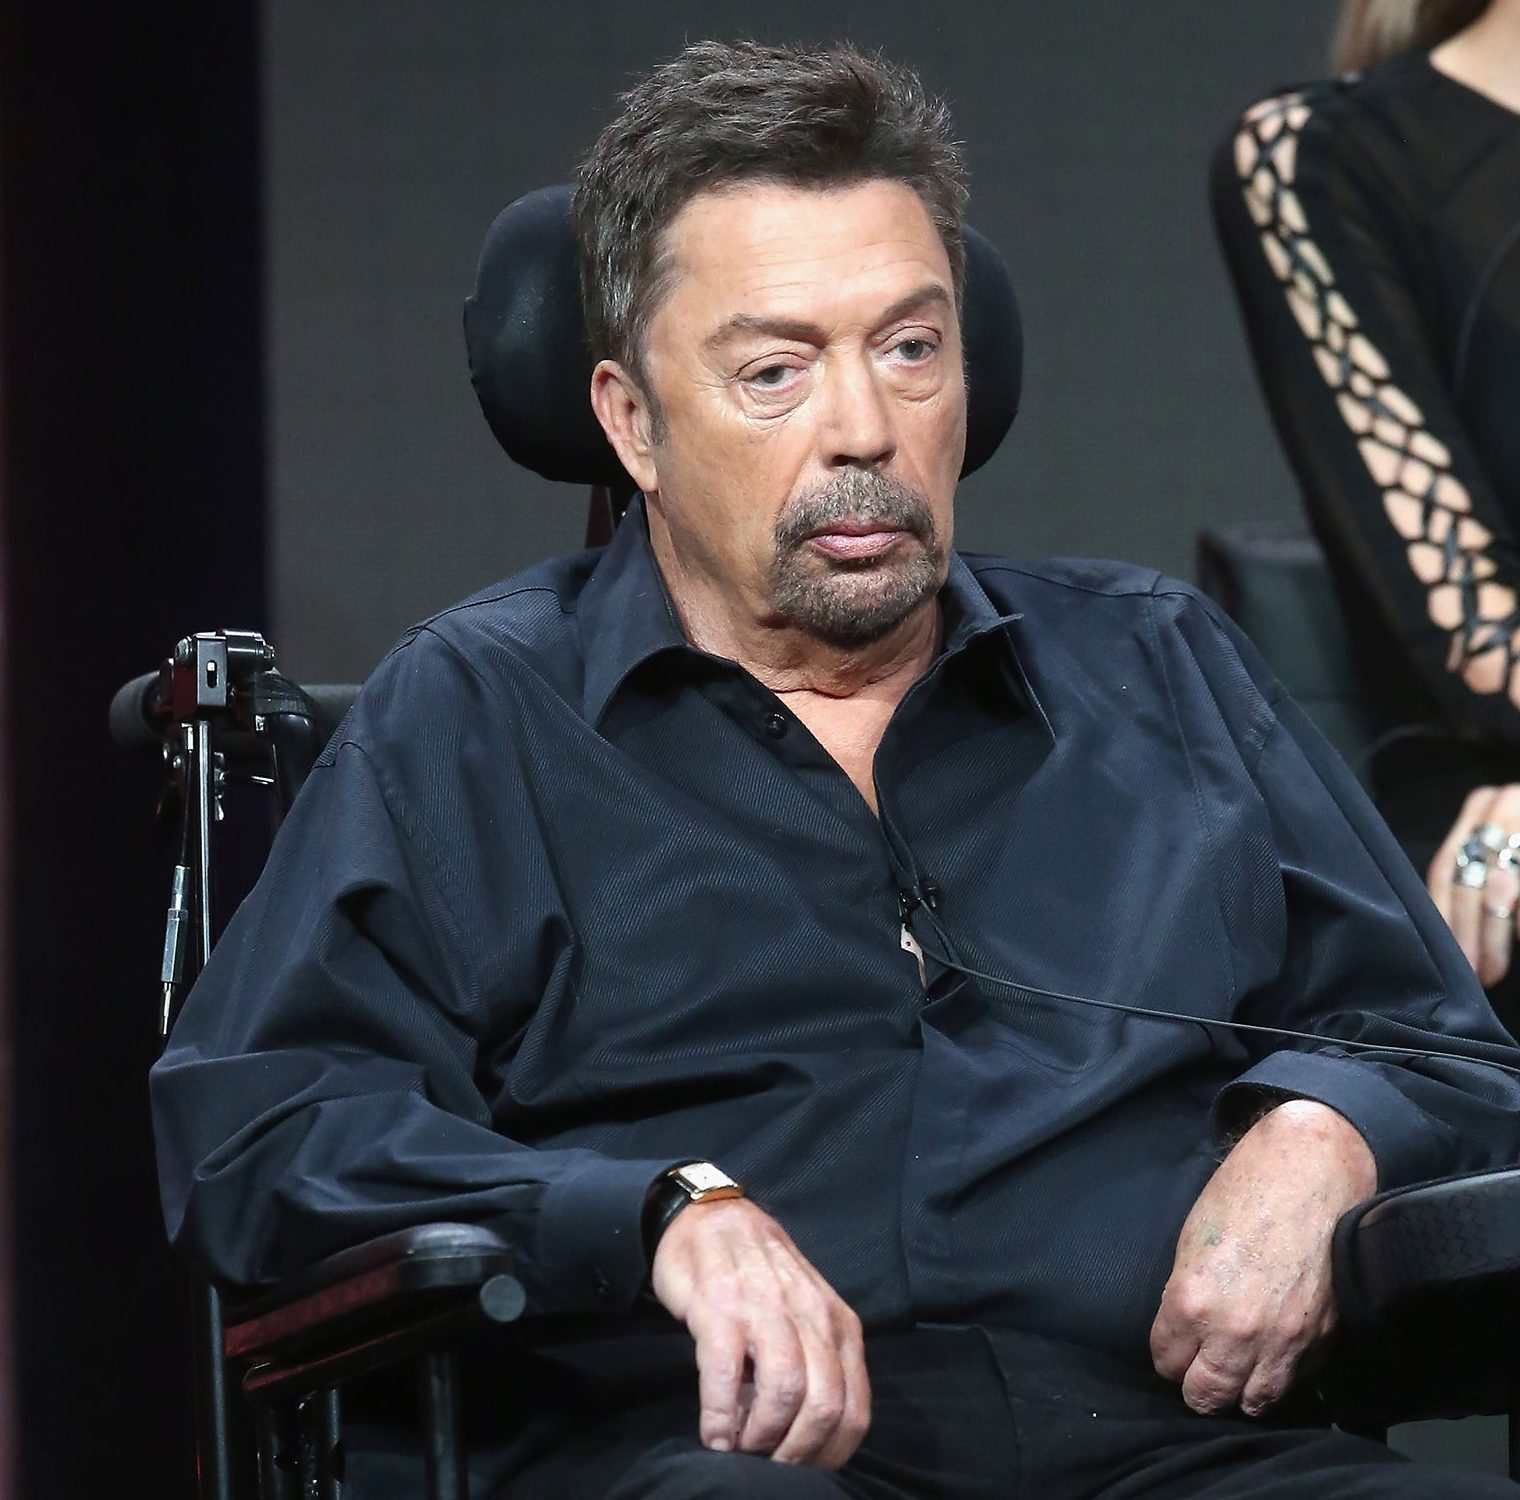 1 226 e1606140257431 40 Facts You Probably Didn't Know About Tim Curry